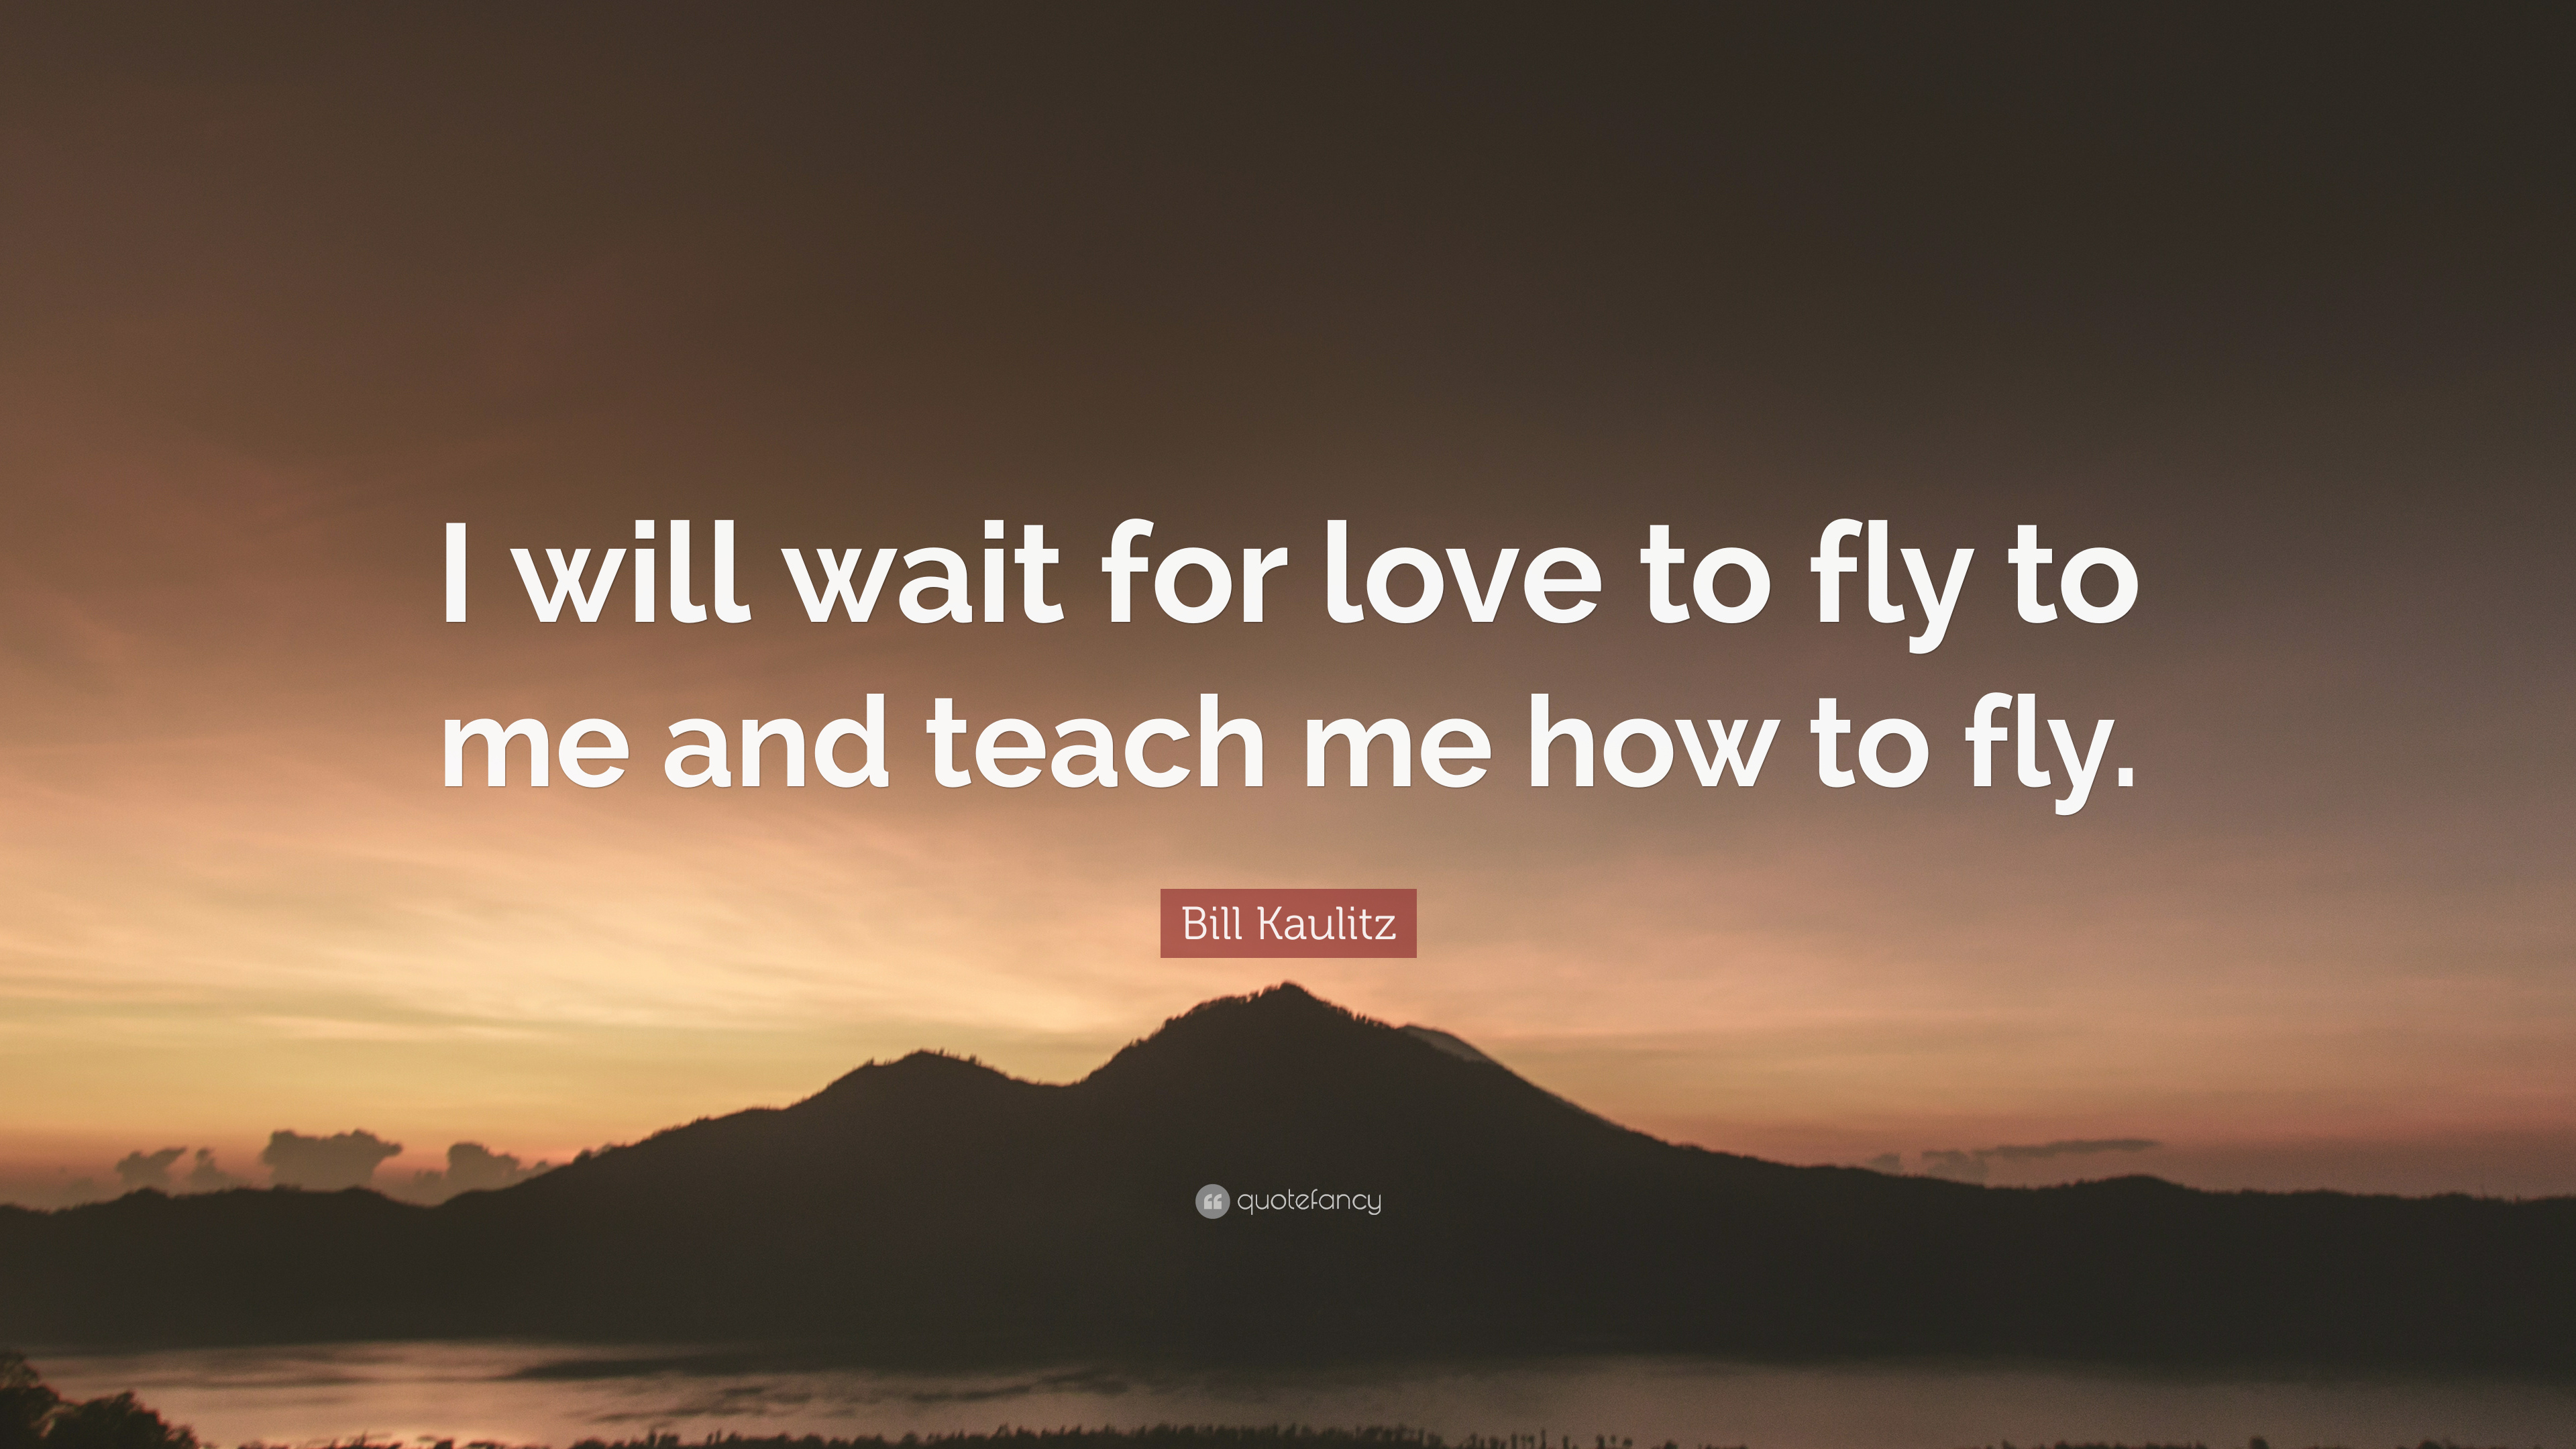 Bill Kaulitz Quote I Will Wait For Love To Fly To Me And Teach Me